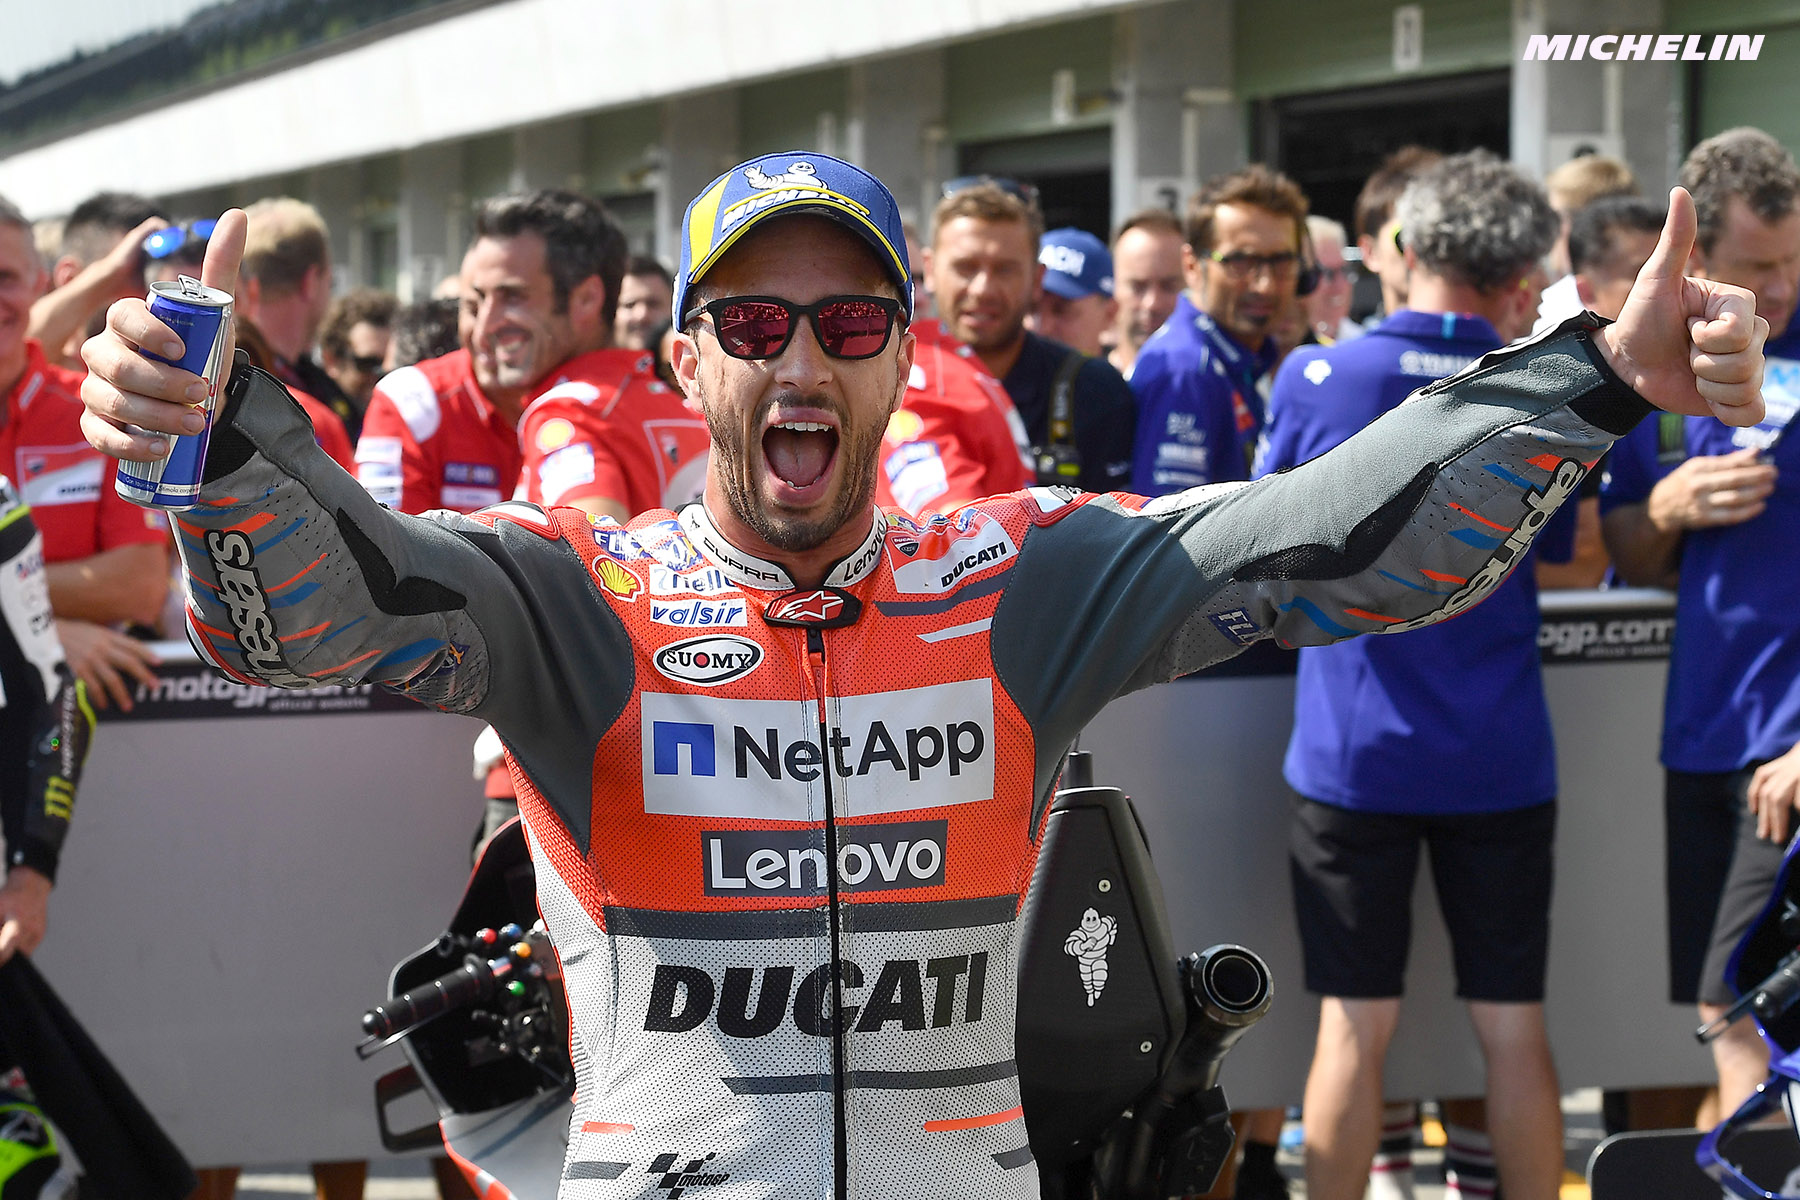 MotoGP™: Dovizioso heads Ducati Team/Michelin 1-2 finish at Brno